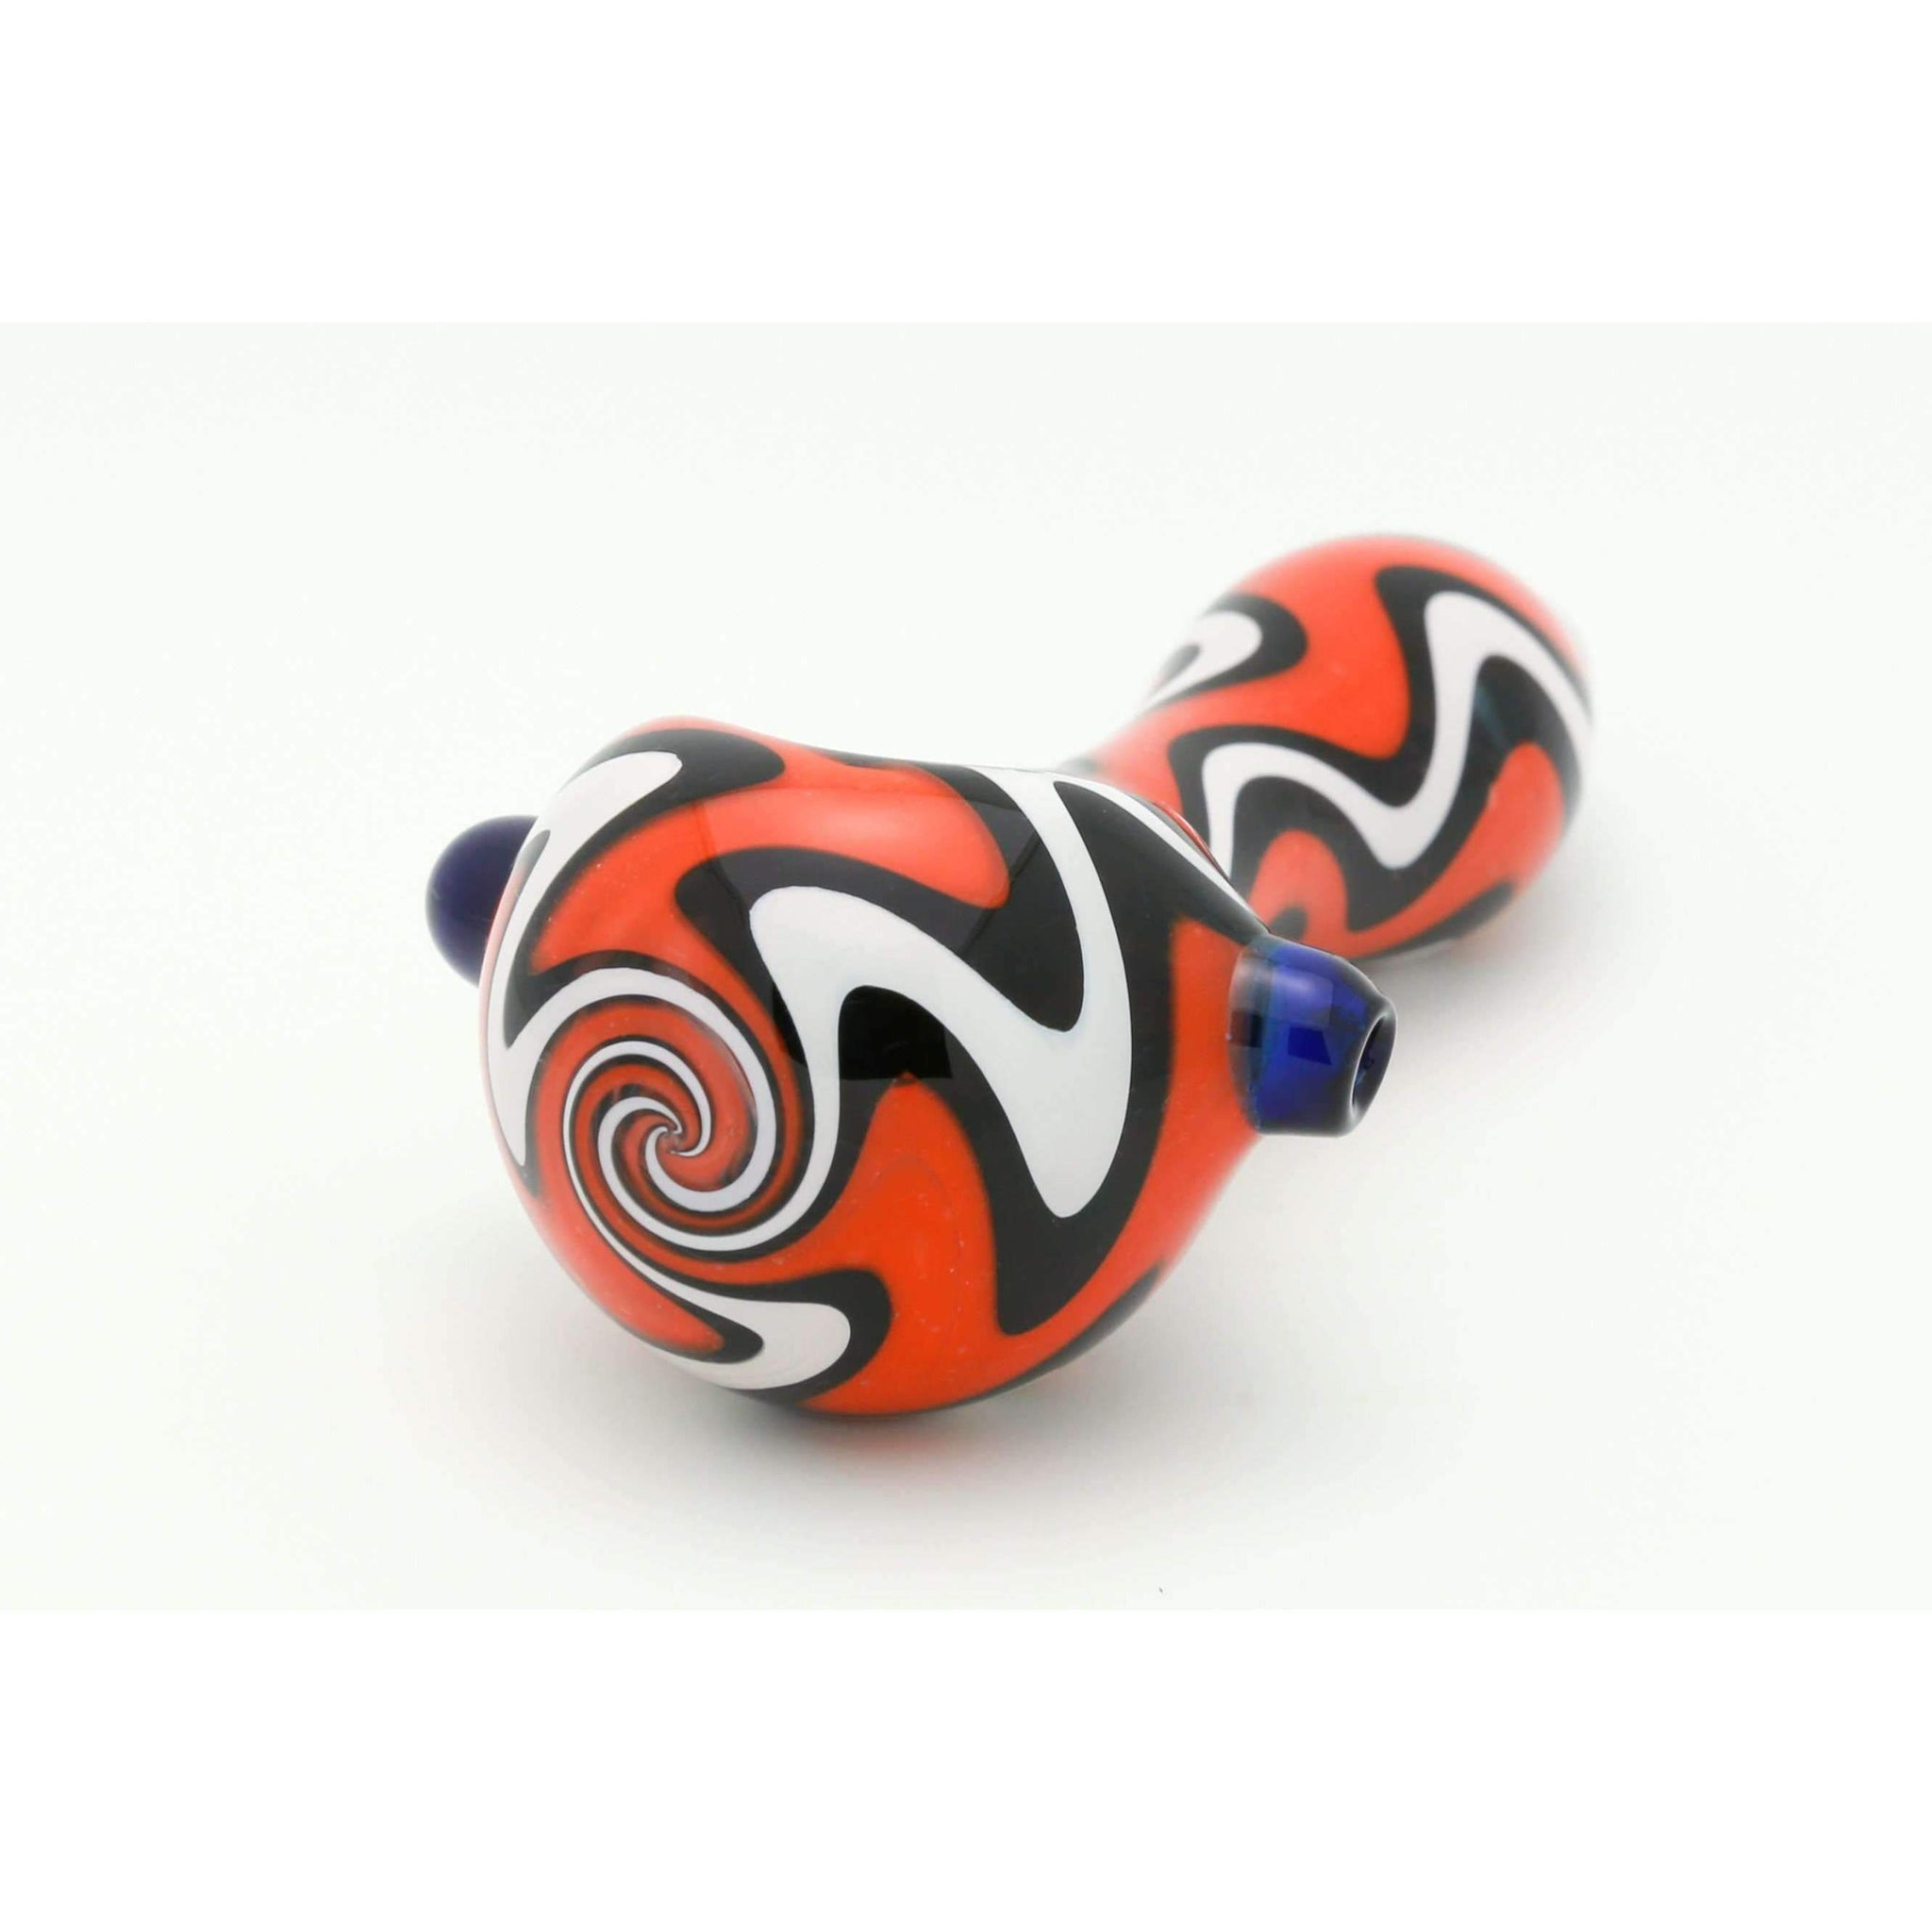 Wizard Puff Trippy Swirl Hand Pipe (Orange Dream)